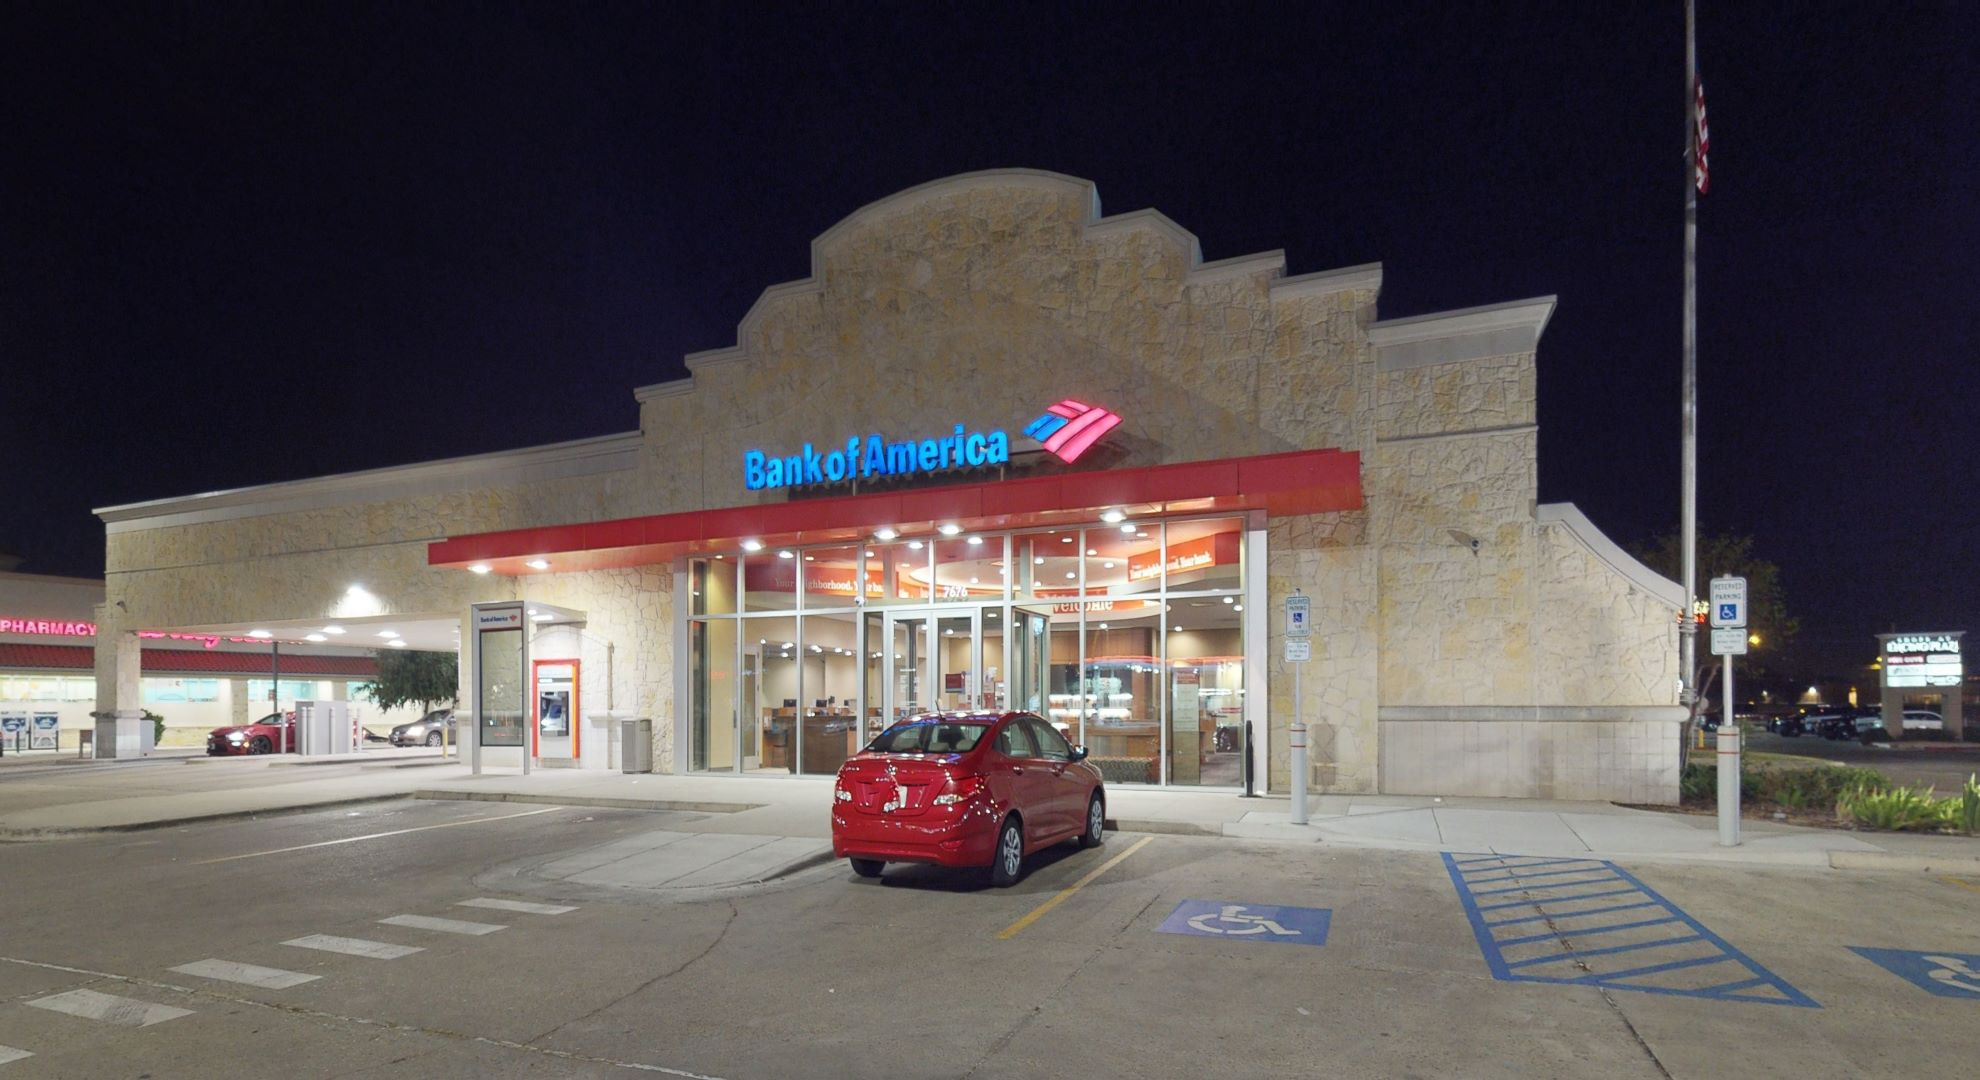 Bank of America financial center with drive-thru ATM and teller   7676 McPherson Rd, Laredo, TX 78041